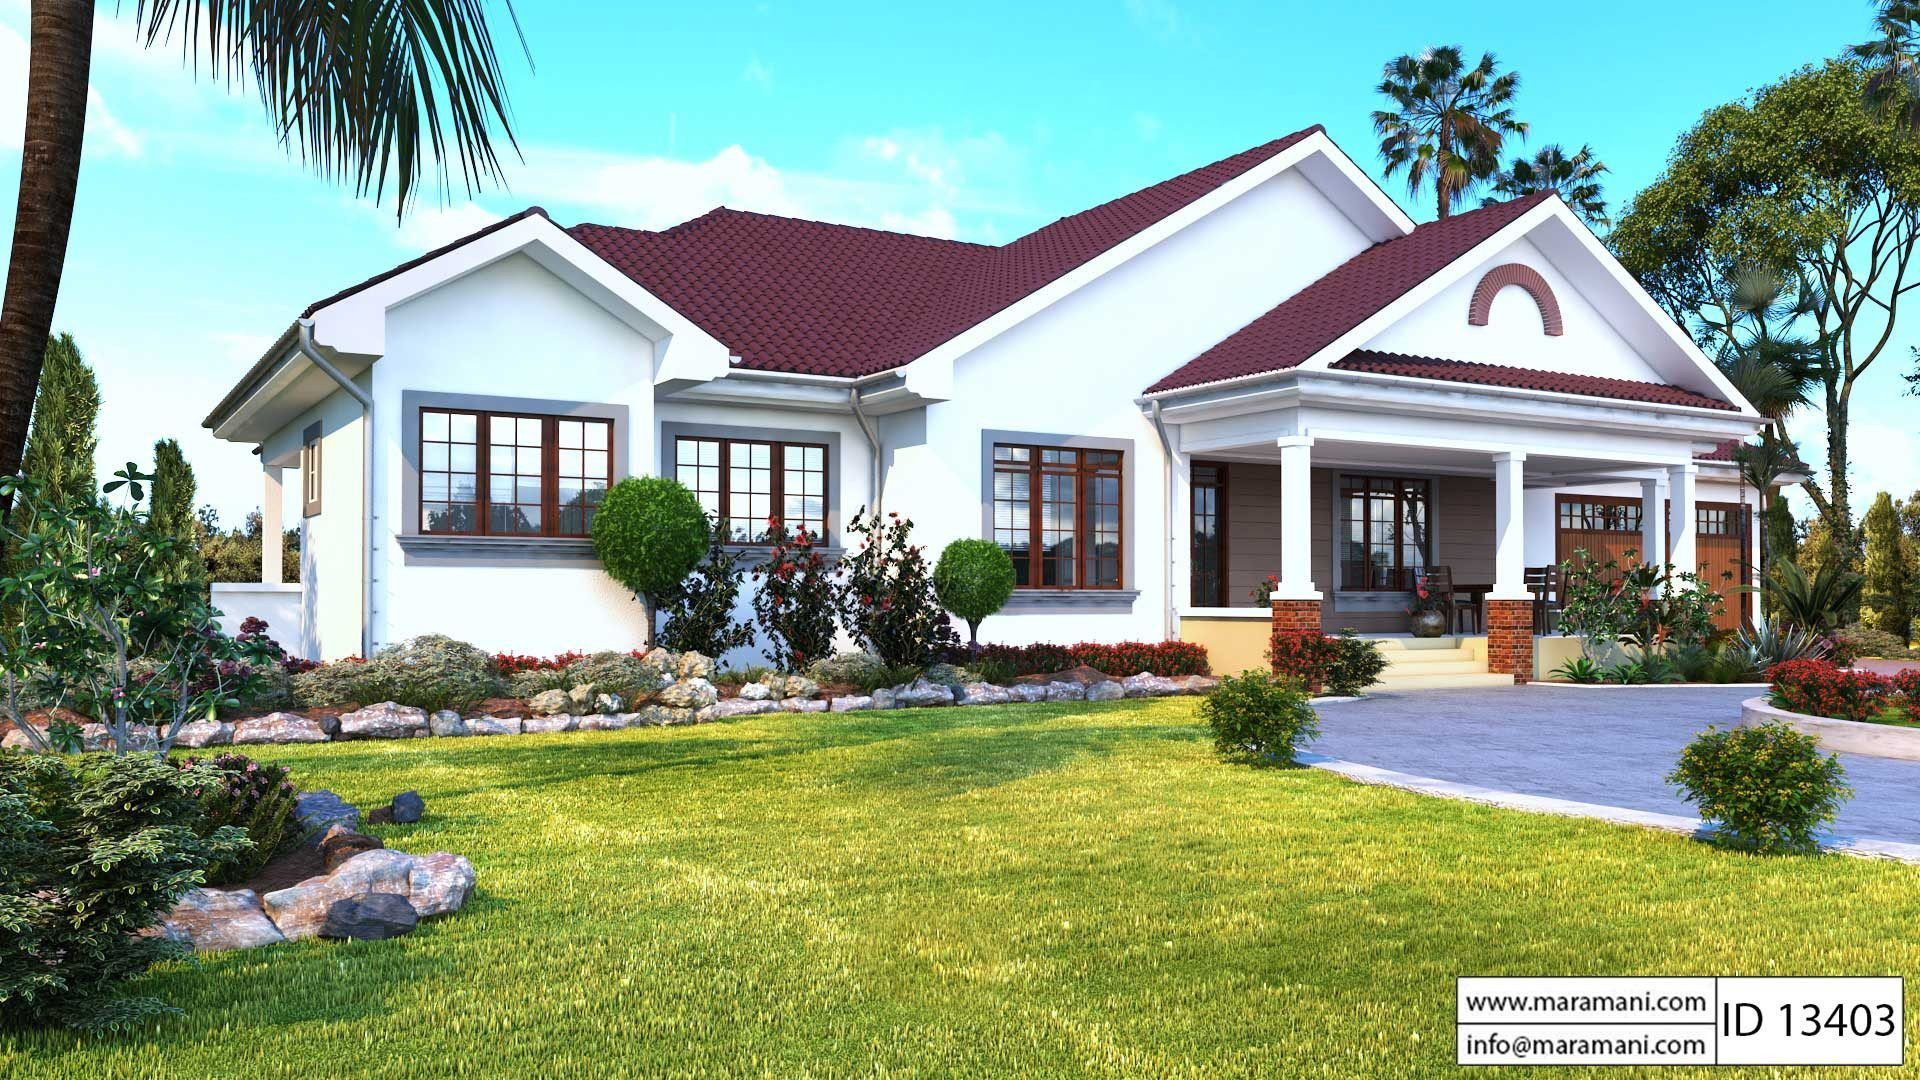 3 Bedroom Bungalow With Garage Id 13403 House Plans By Maramani Craftsman House Plans House Plans House Construction Plan